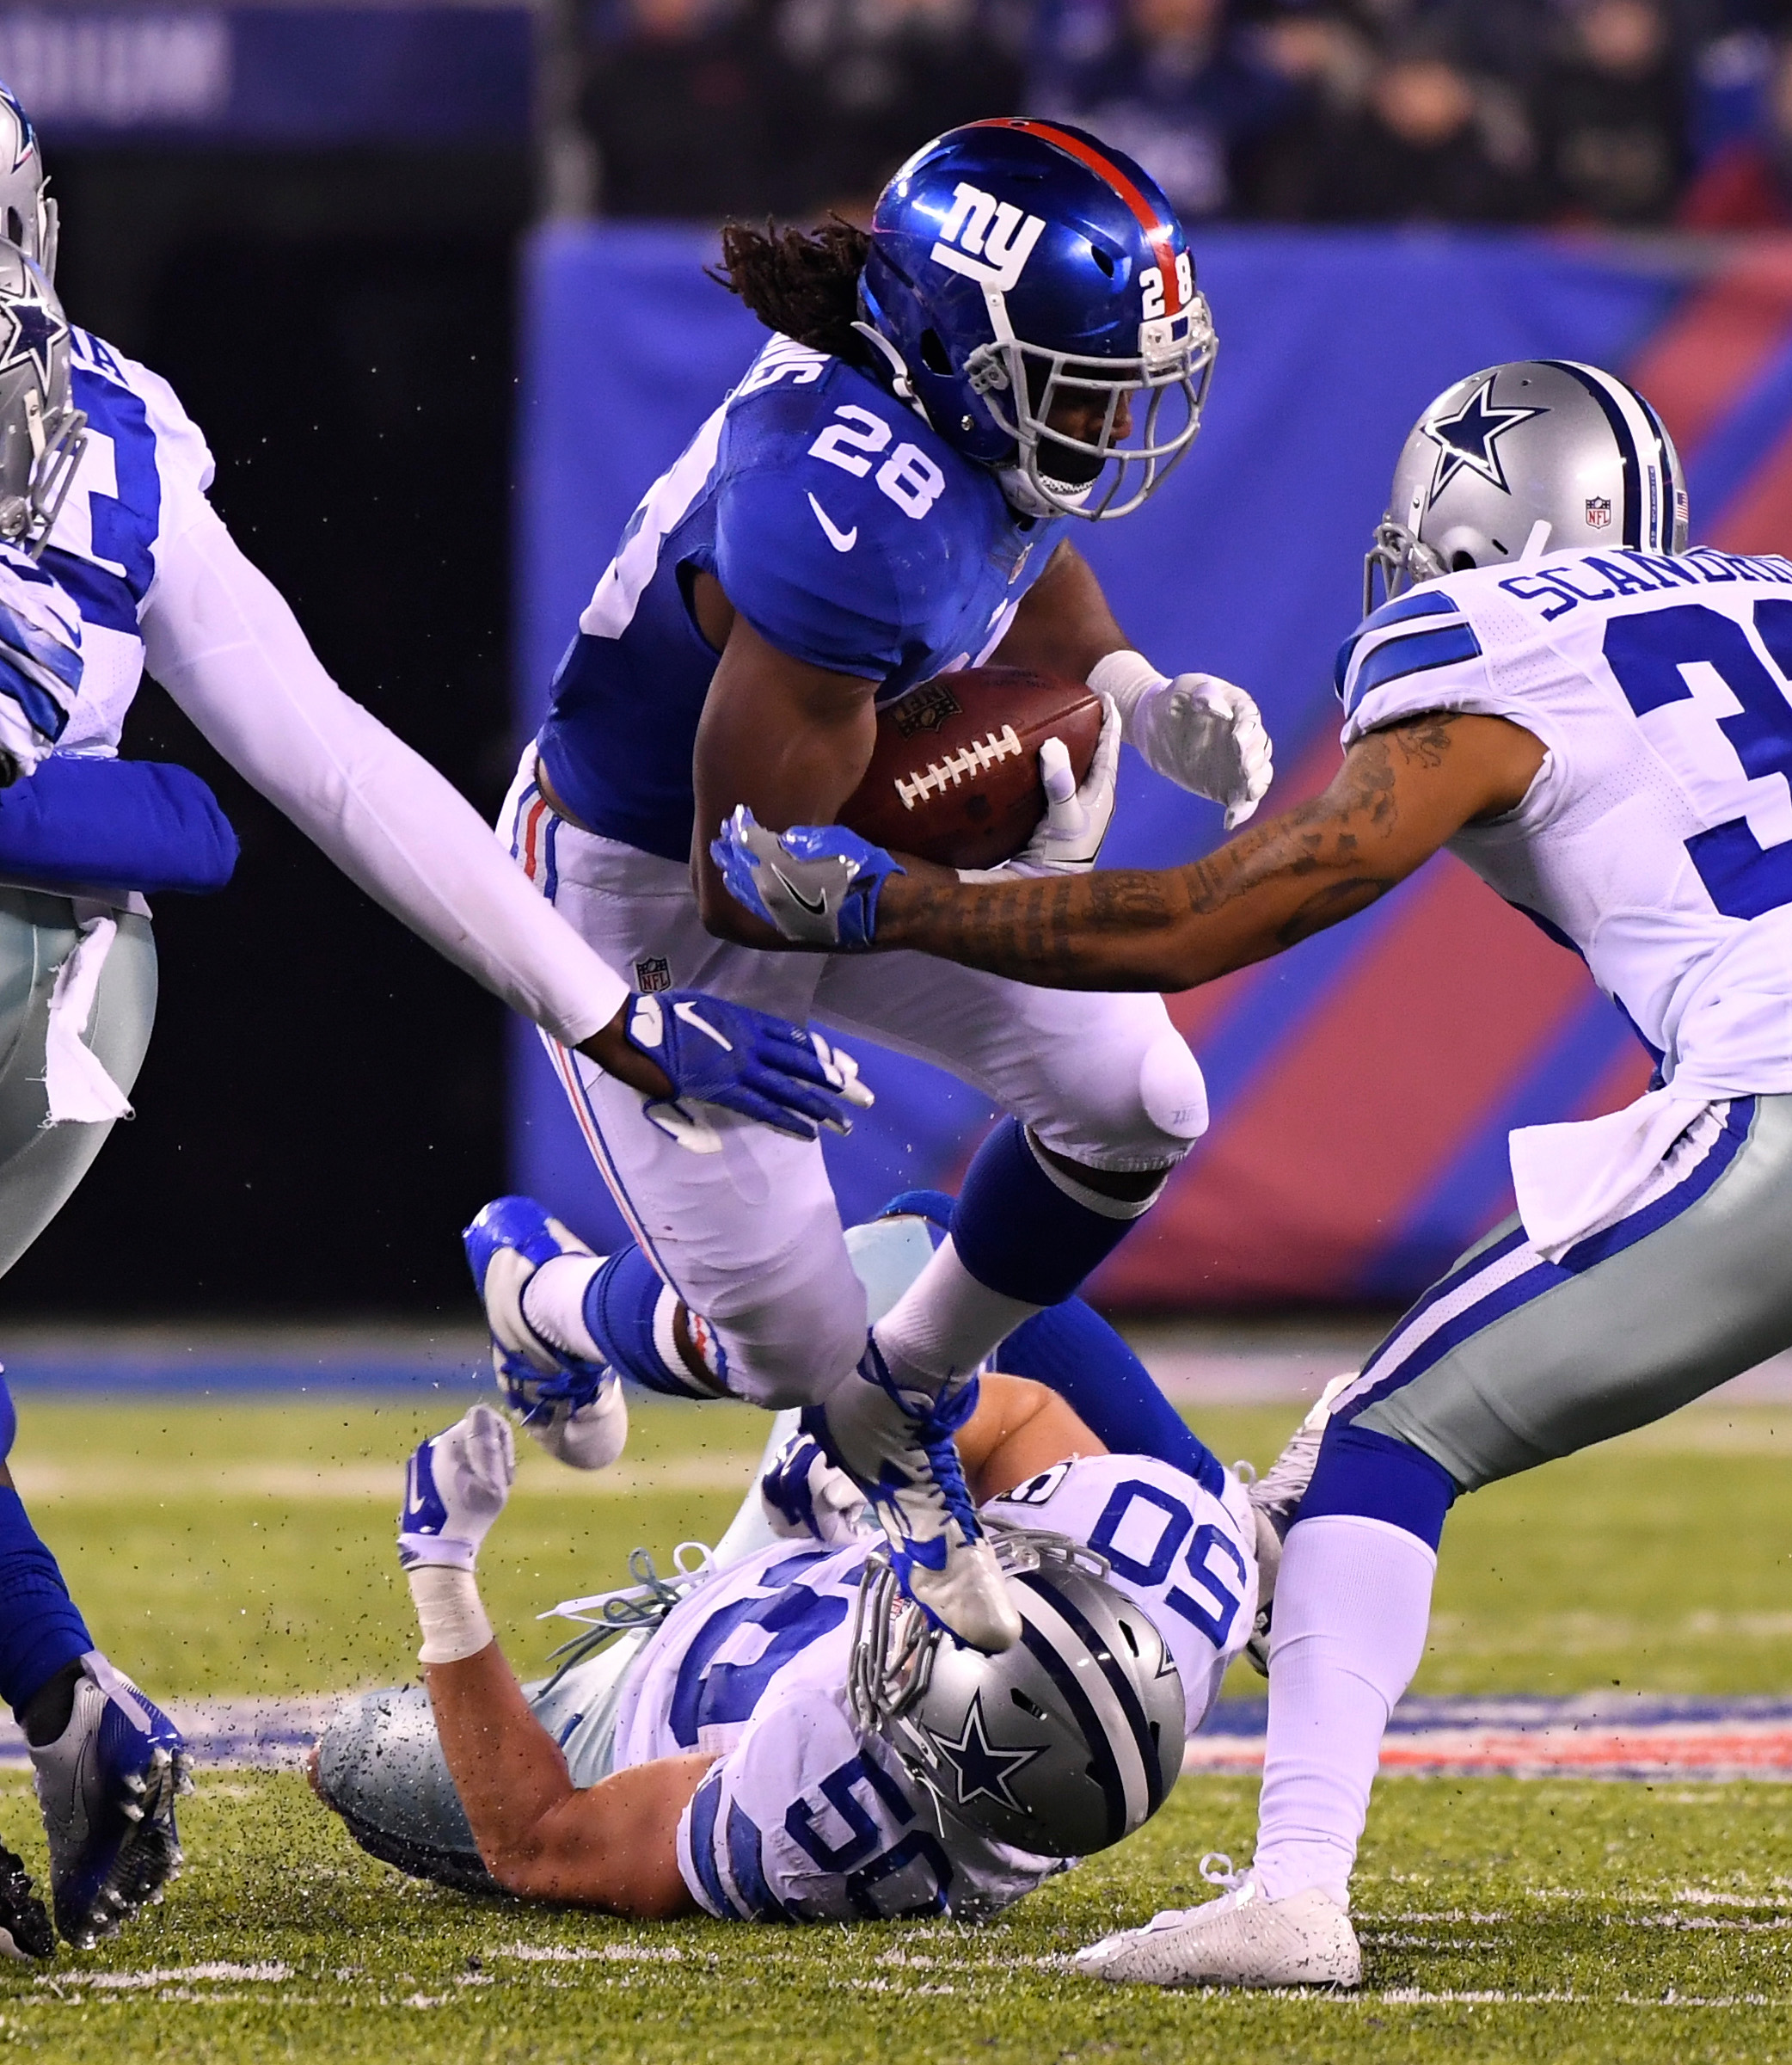 9743327-nfl-dallas-cowboys-at-new-york-giants